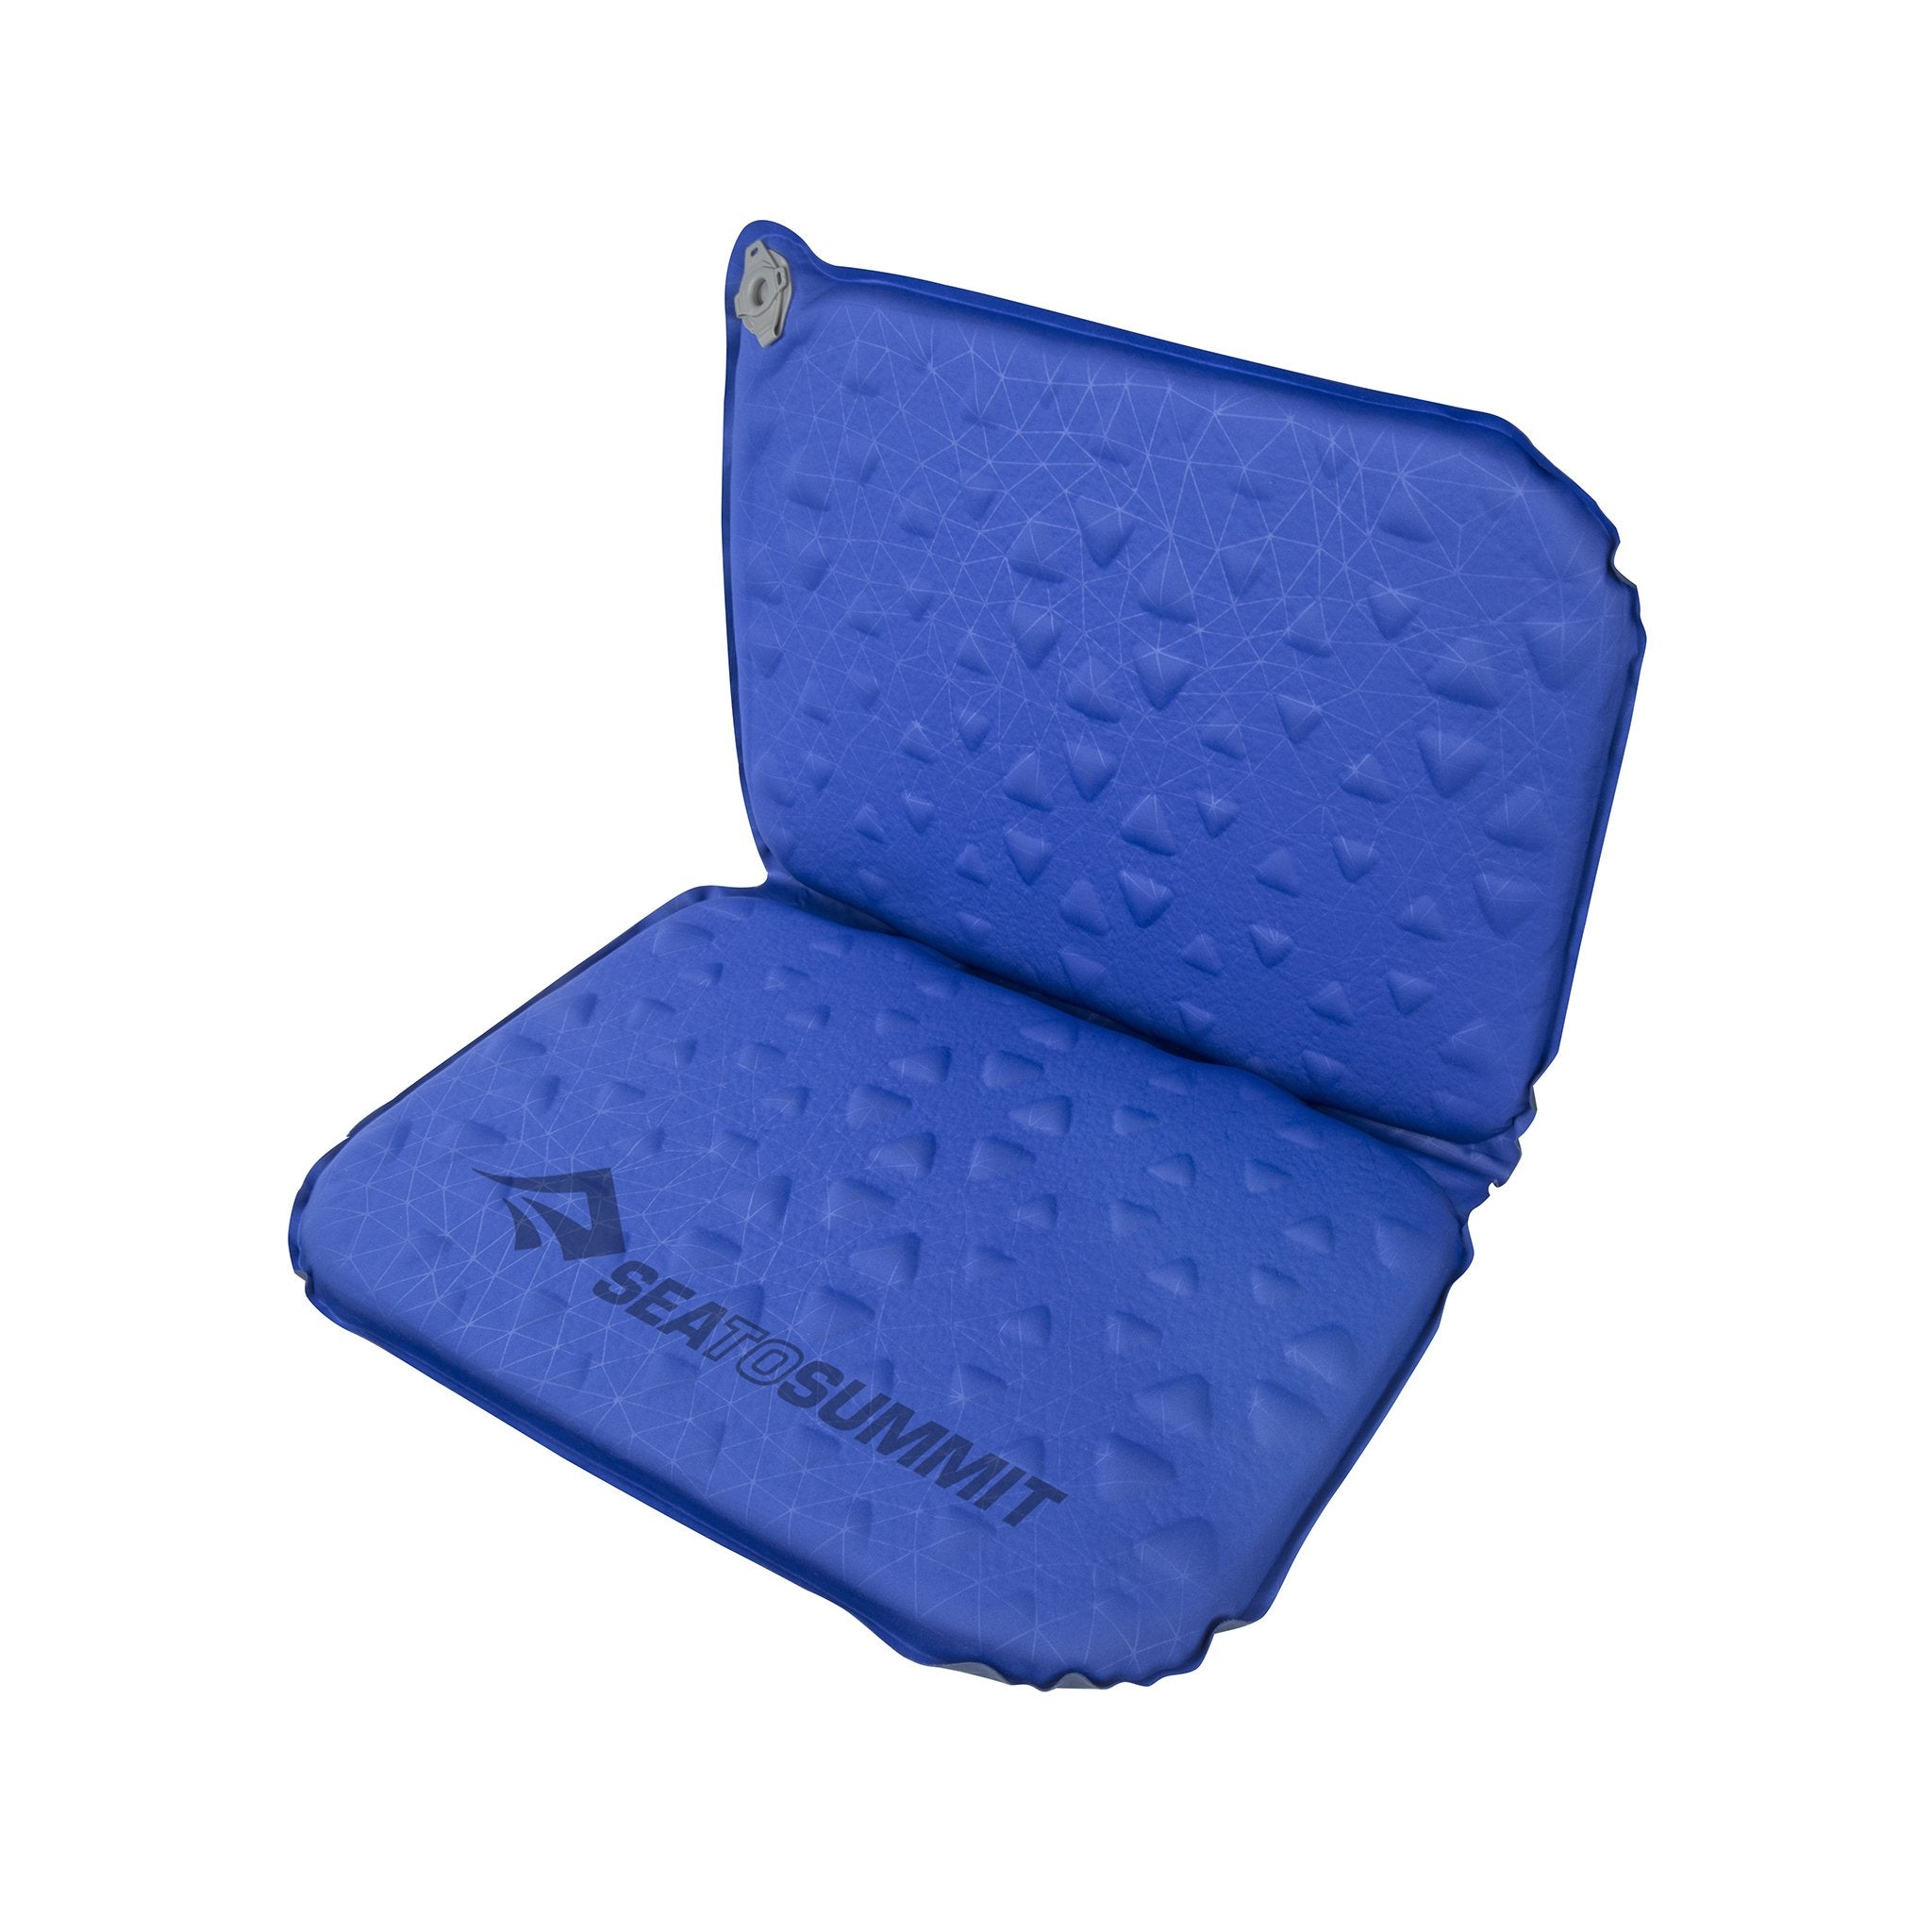 Delta SI V Seat _ foam stadium seat cushion with back support